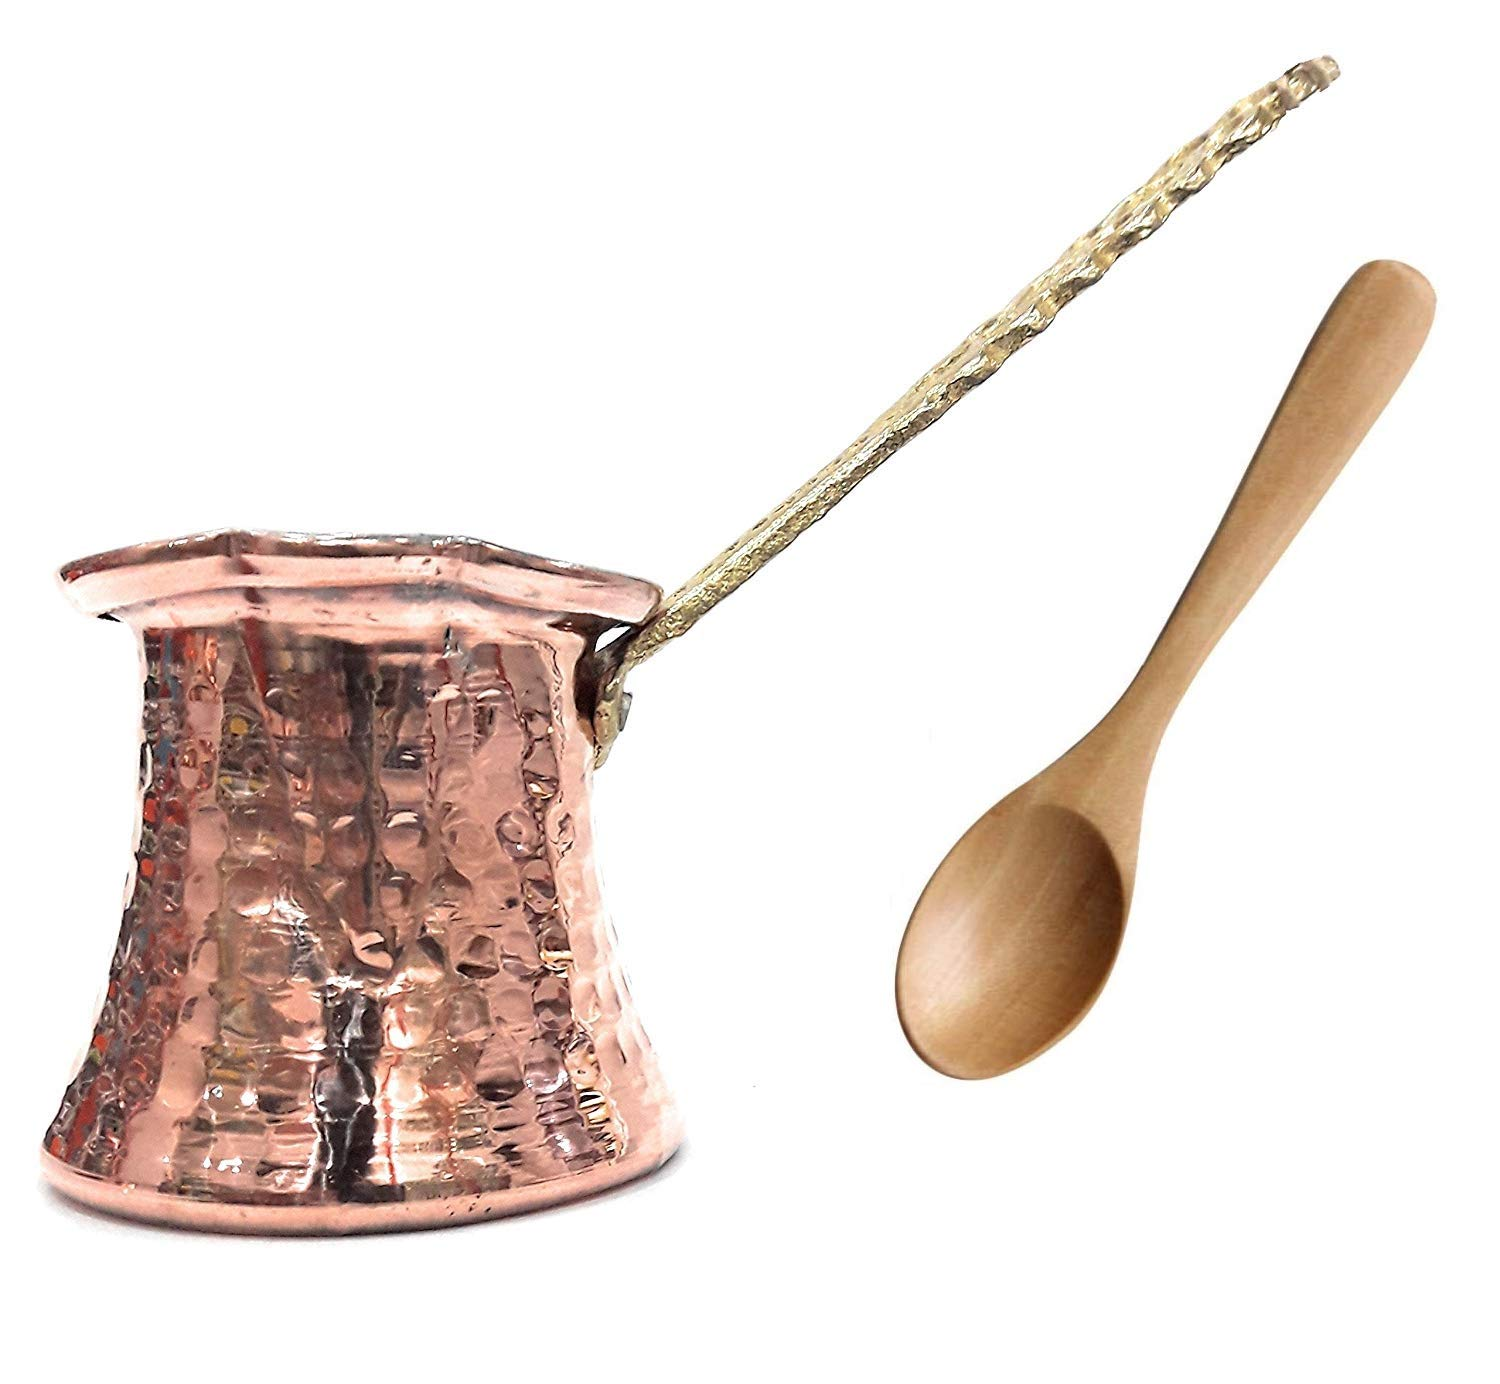 The Silk Road Trade - MC Series (X-Small) - Hammered Copper Turkish Greek Coffee Pot, Cezve, Ibrik, Coffee Maker with Premium Brass Handle - (4.5 fl oz) with Gift Wooden Spoon